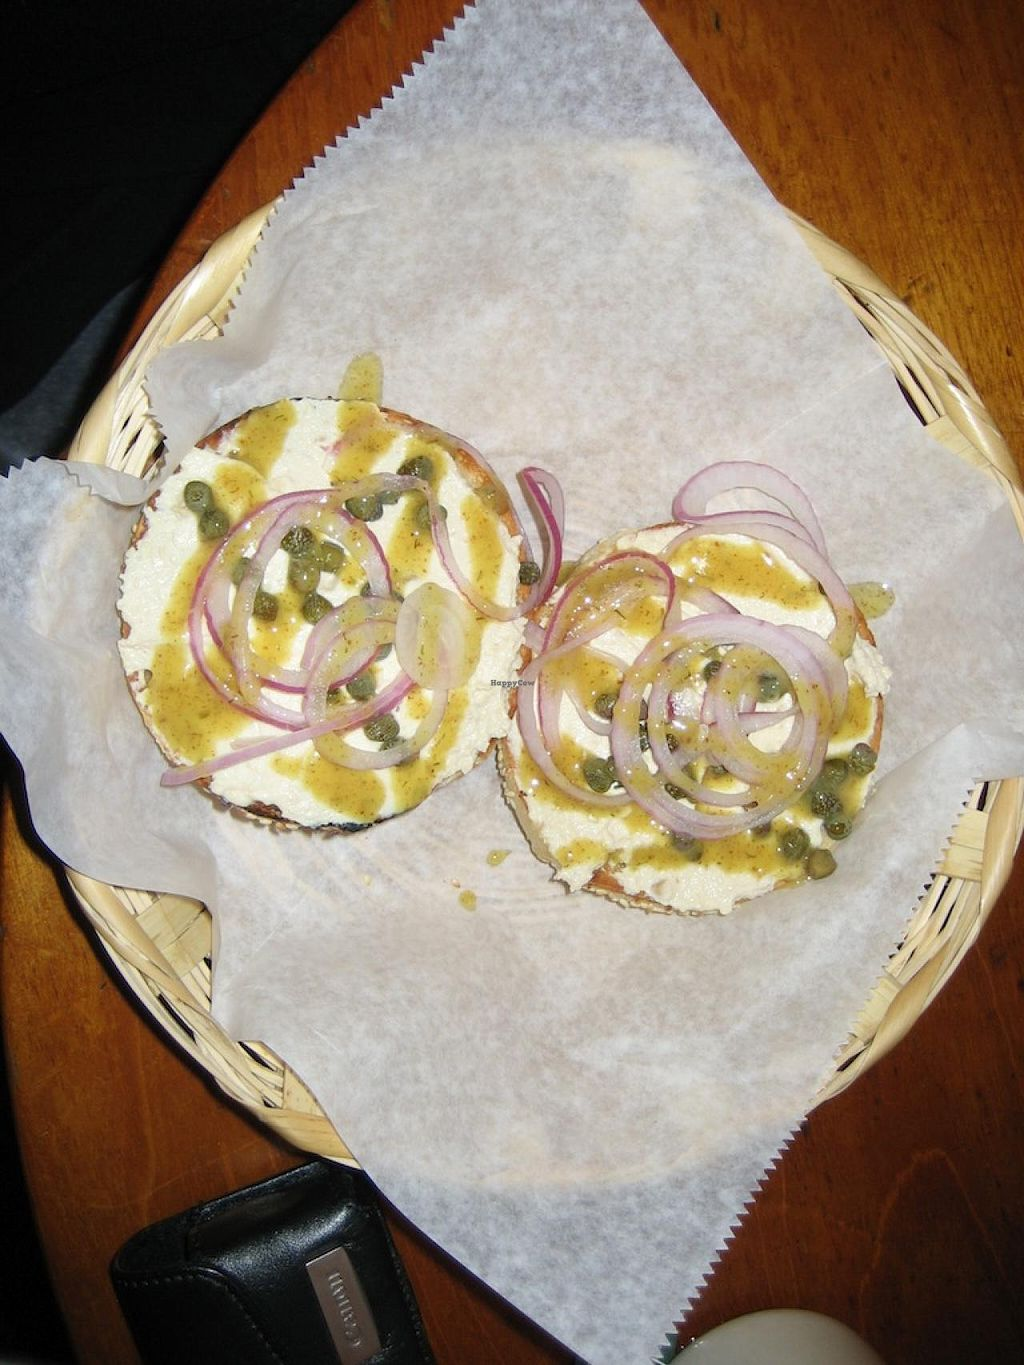 "Photo of Los Bagels  by <a href=""/members/profile/vegan%20frog"">vegan frog</a> <br/>Vegan capers bagel <br/> January 3, 2014  - <a href='/contact/abuse/image/5752/61644'>Report</a>"